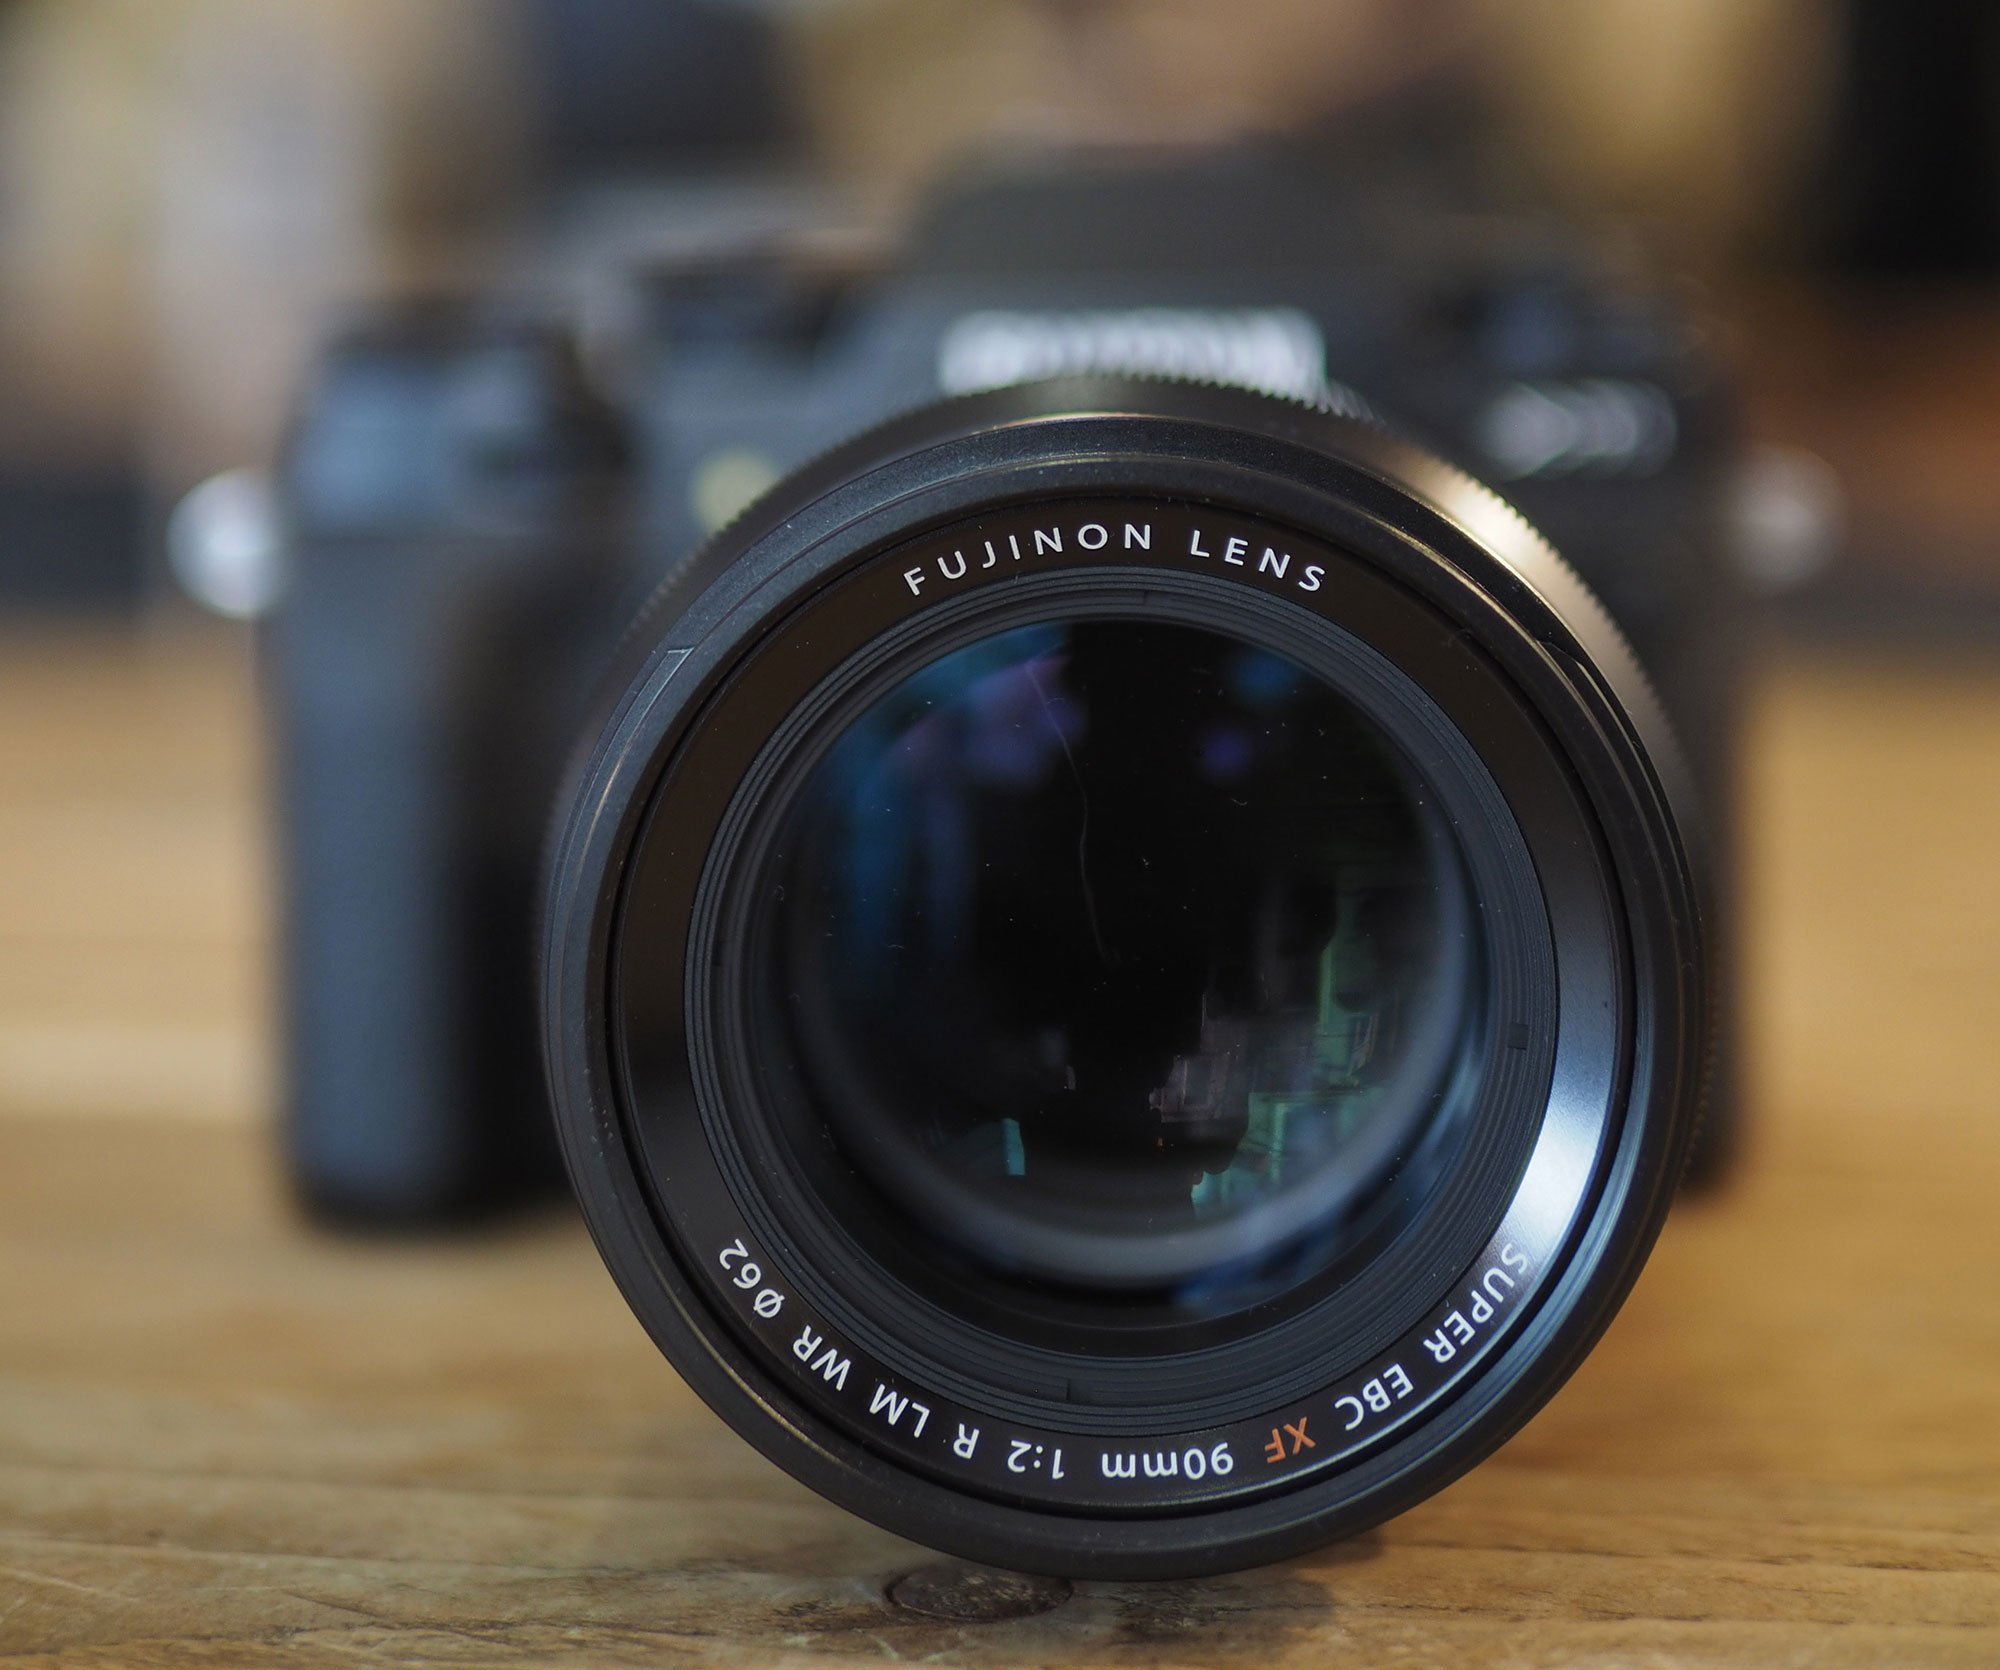 fuji xf 90mm f2 review